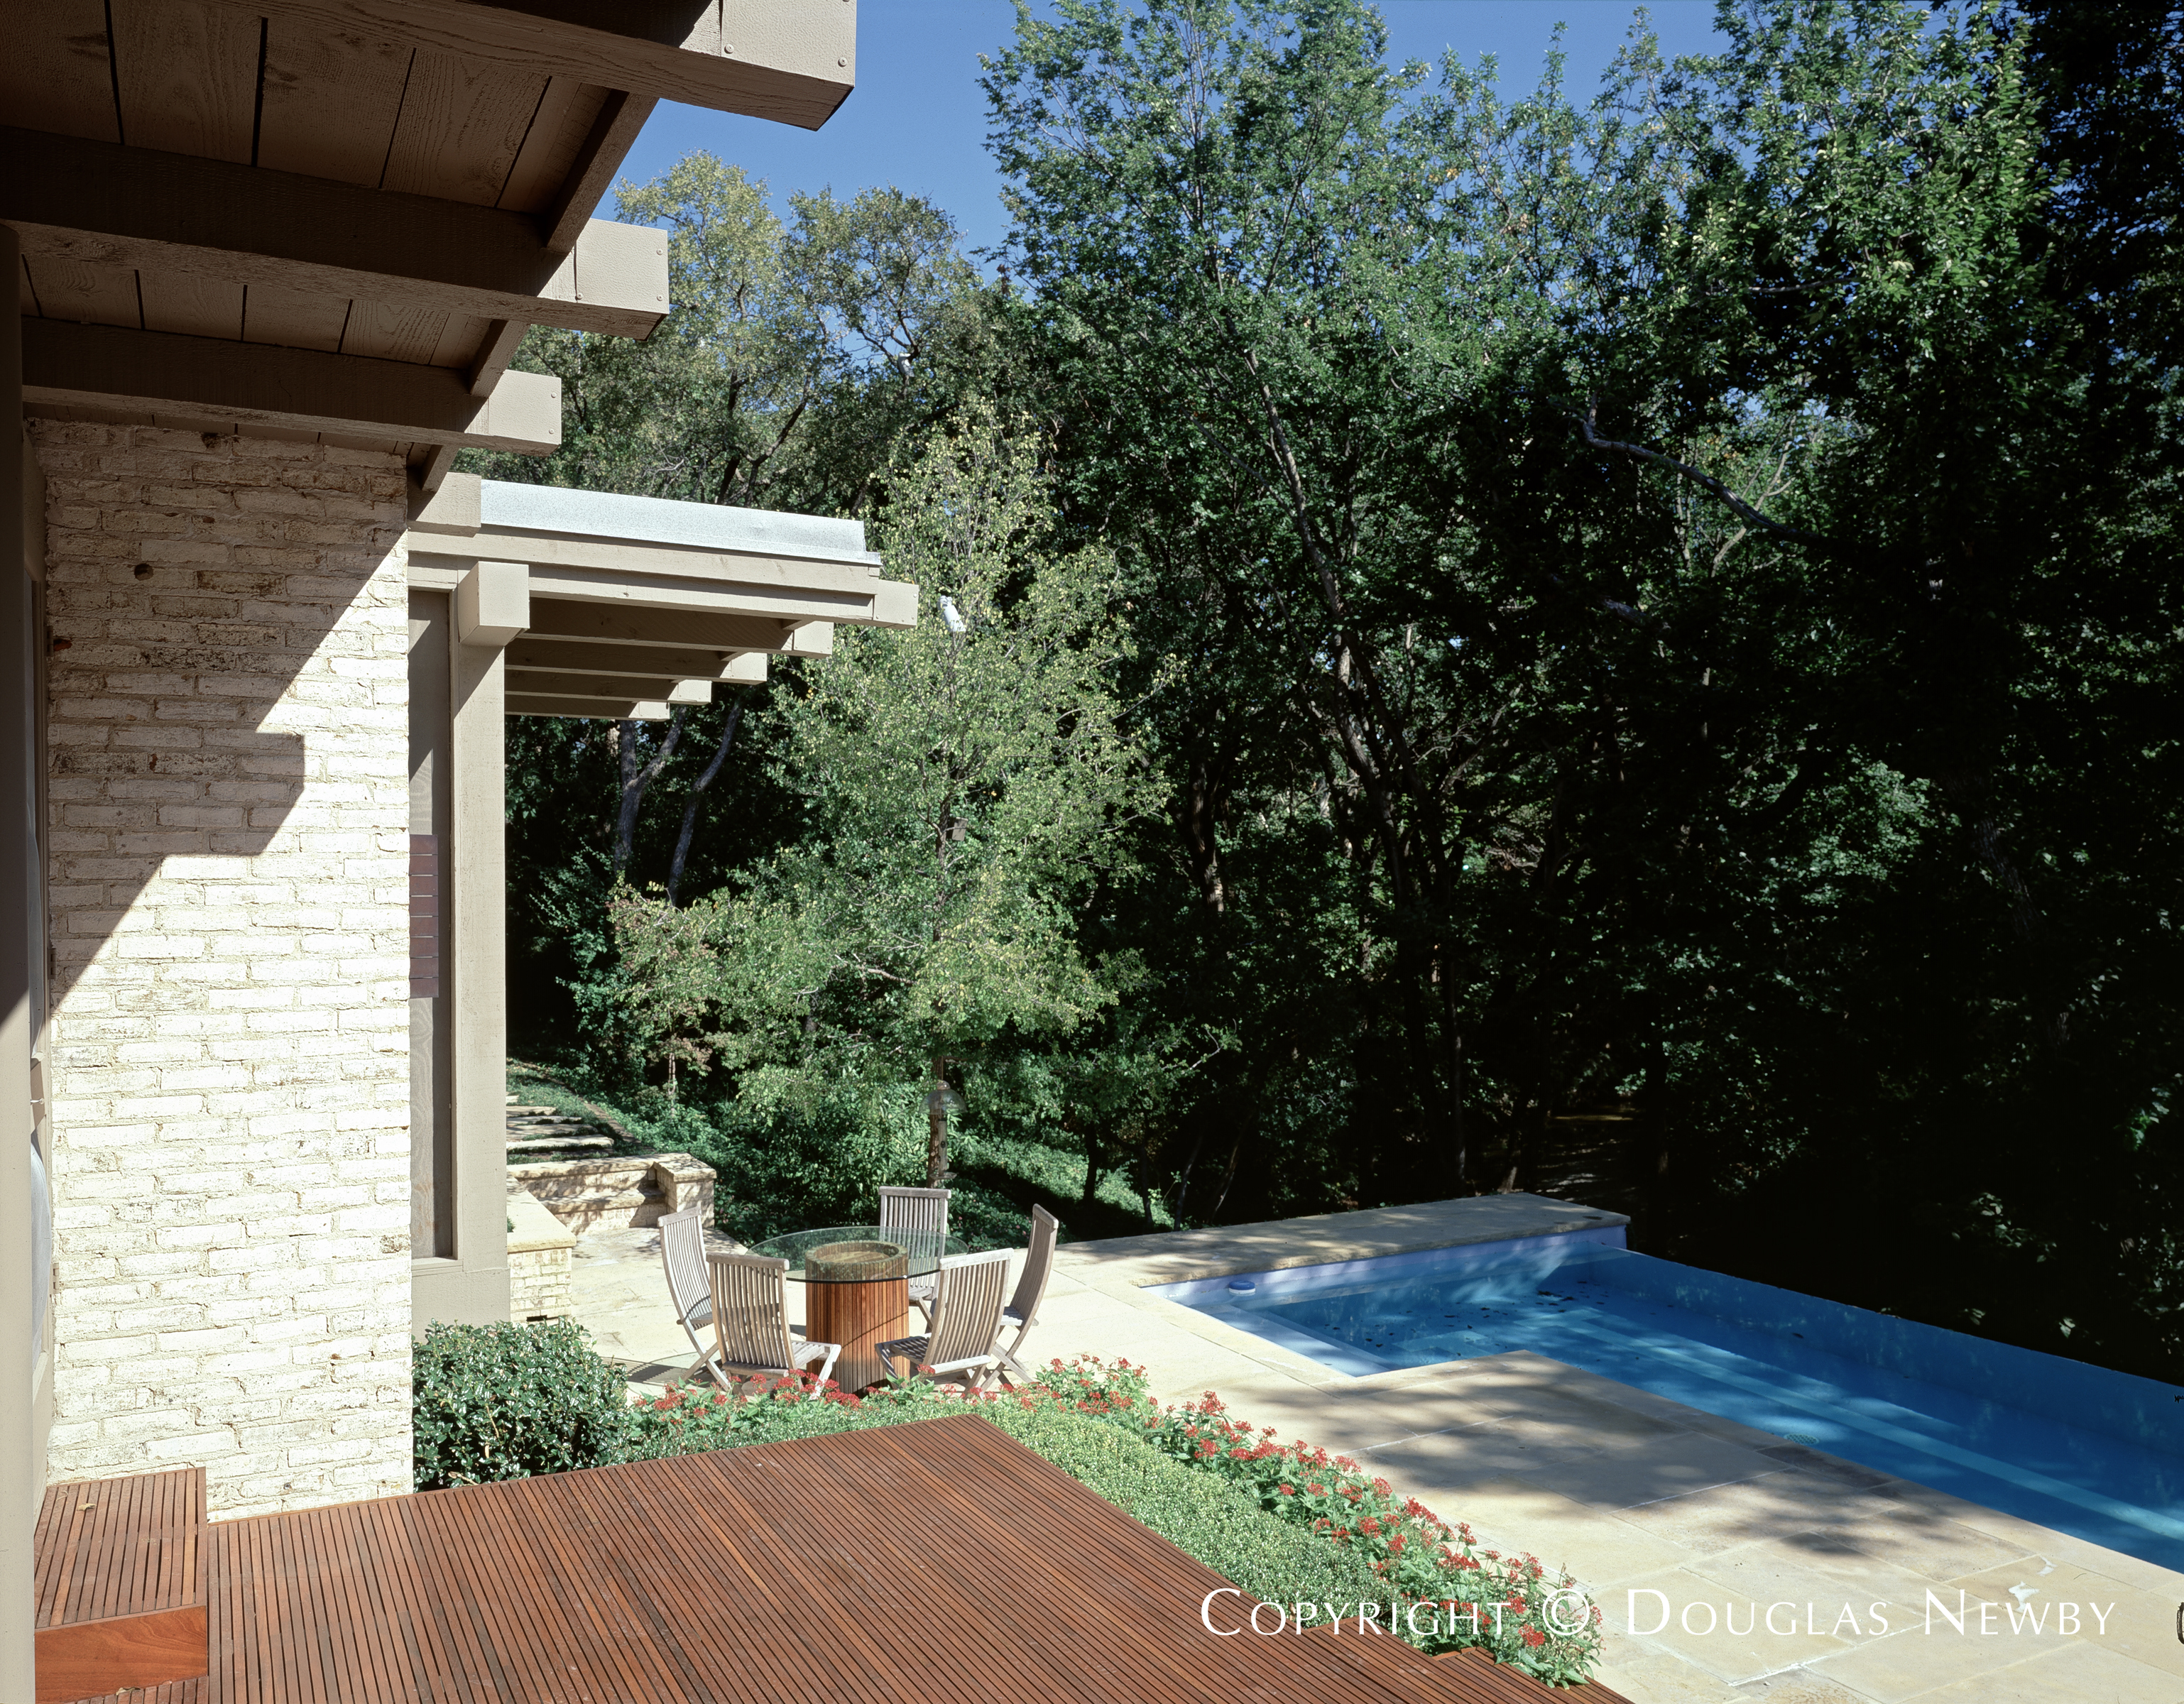 David George Texas Modern Home built in the 1980s